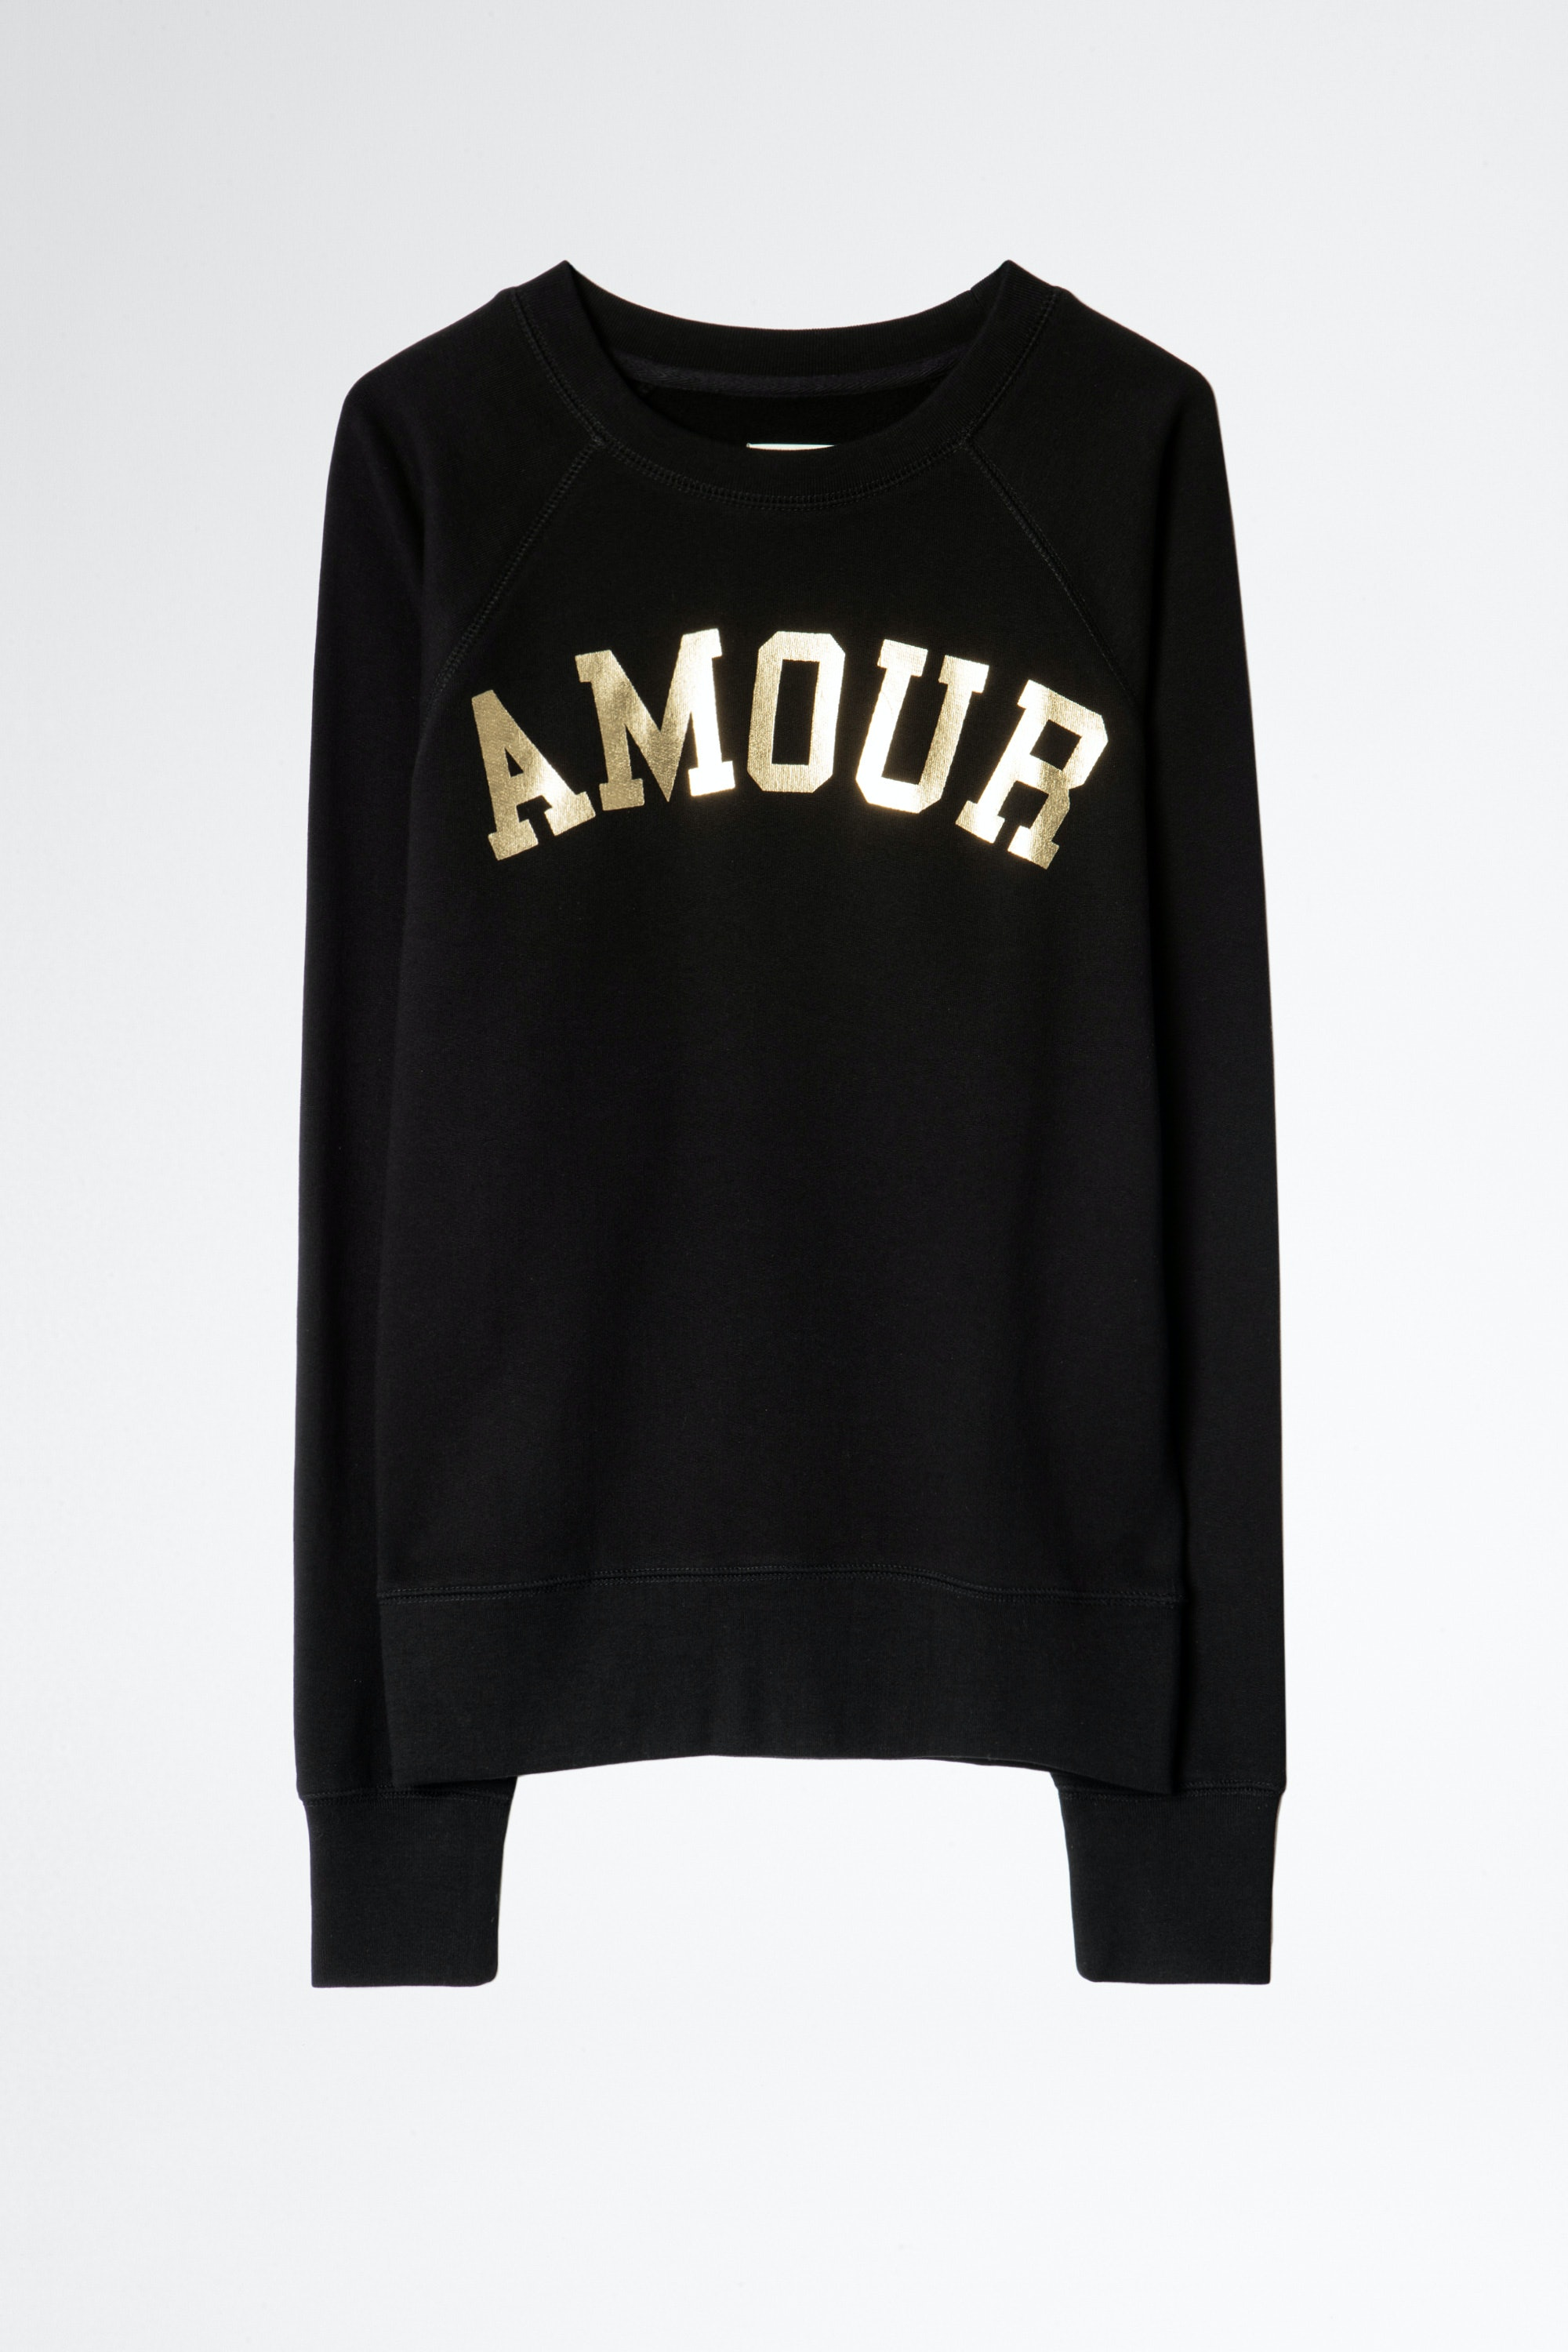 Upper Amour Sweatshirt